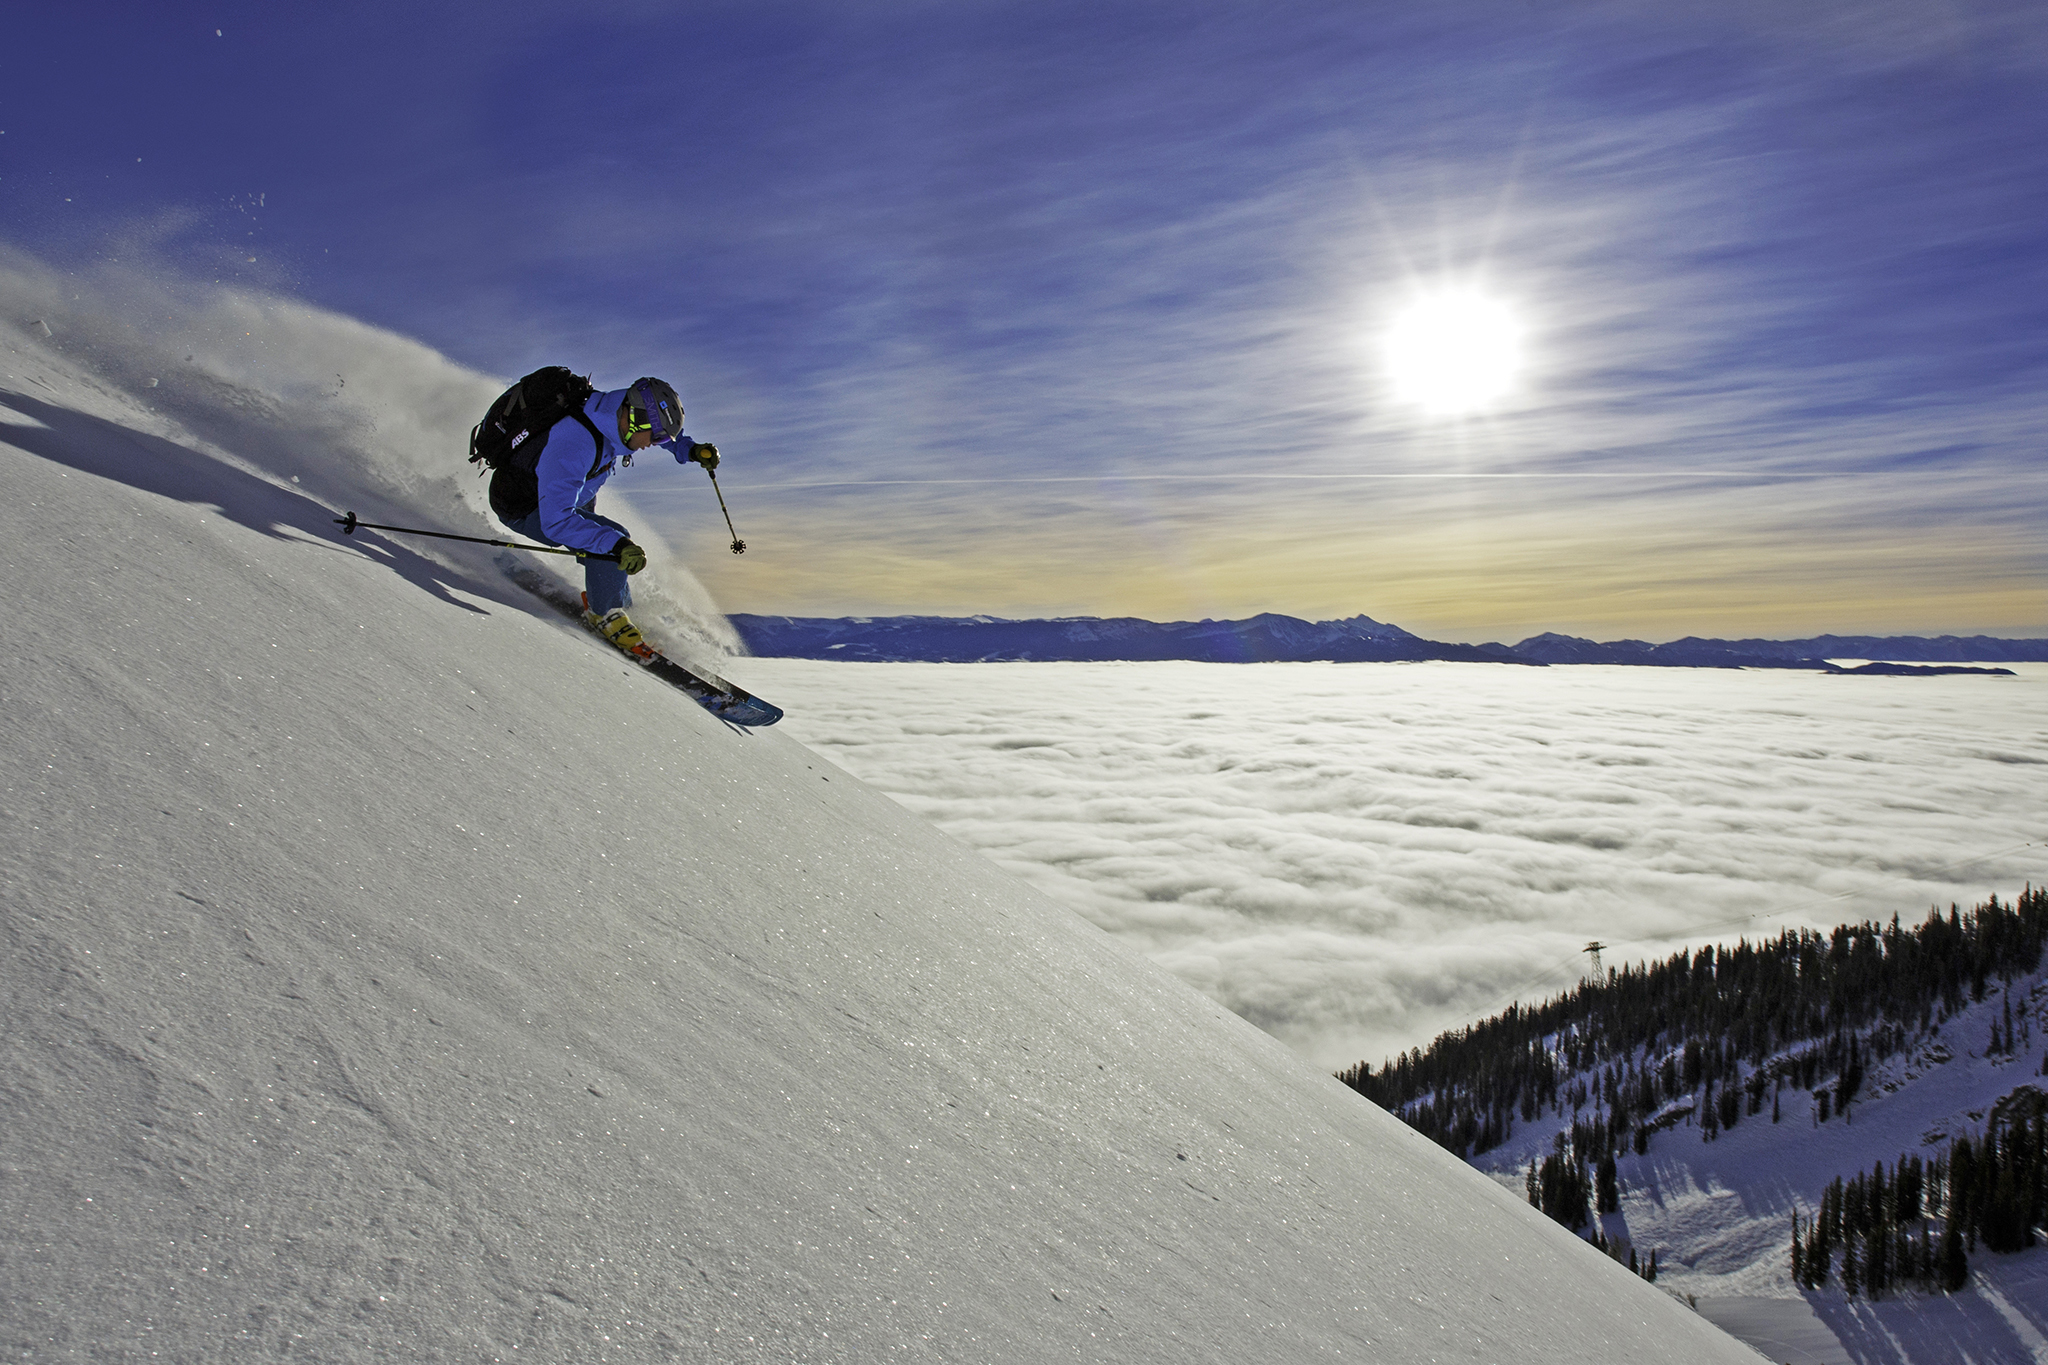 best ski resorts in america for skiing, snowboarding and après ski